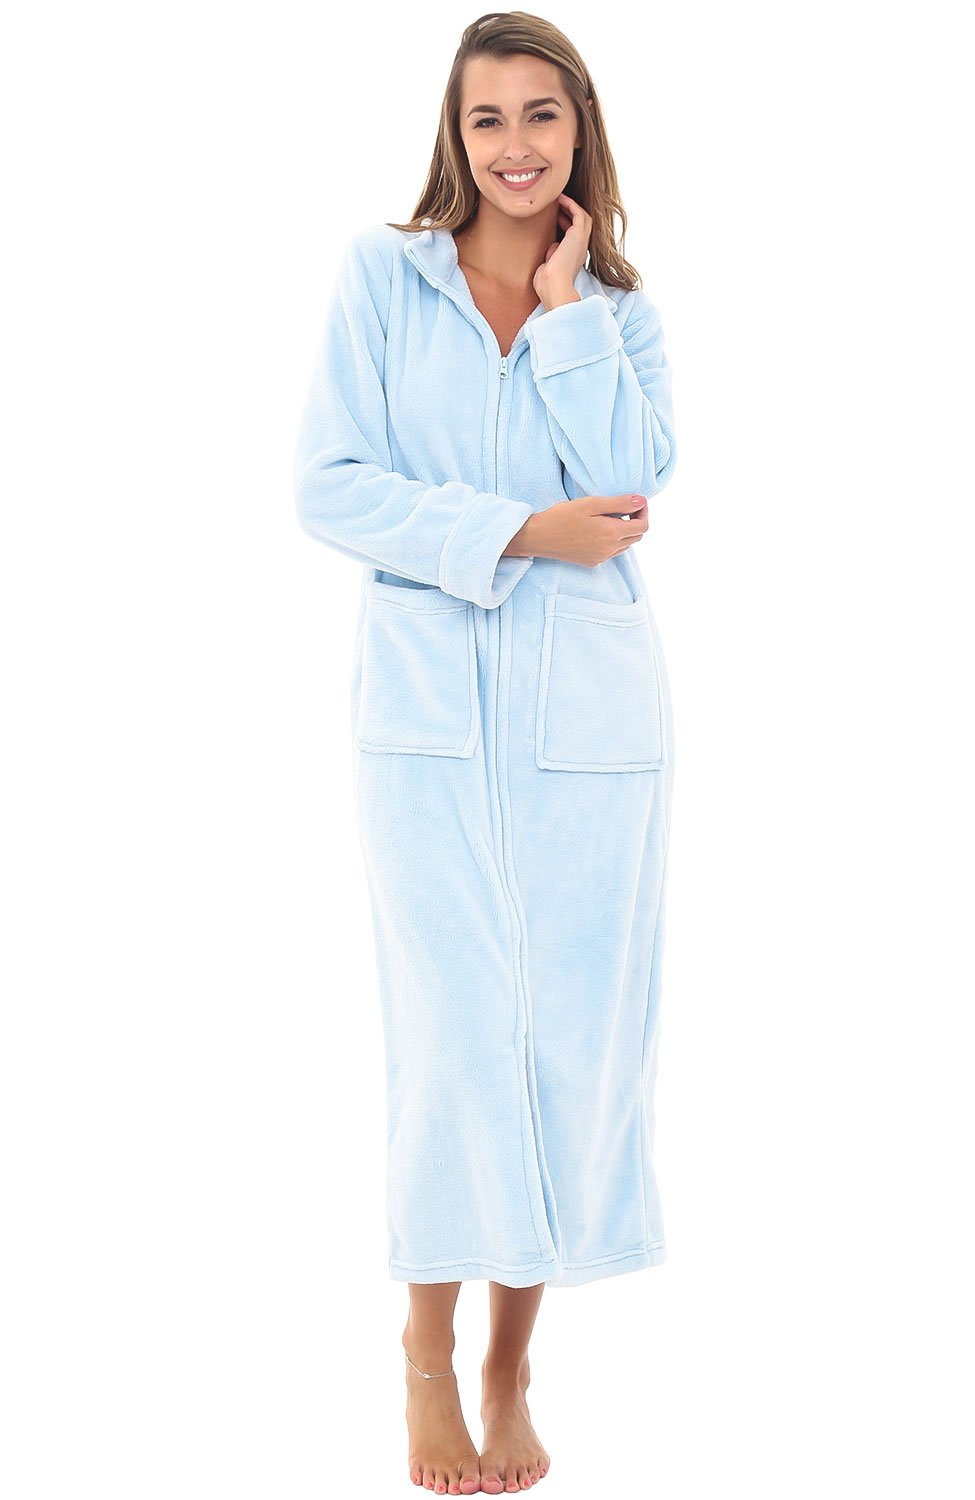 Alexander Del Rossa Womens Fleece Robe, Zip-Front Bathrobe, 2X Light Blue (A0307LBL2X)